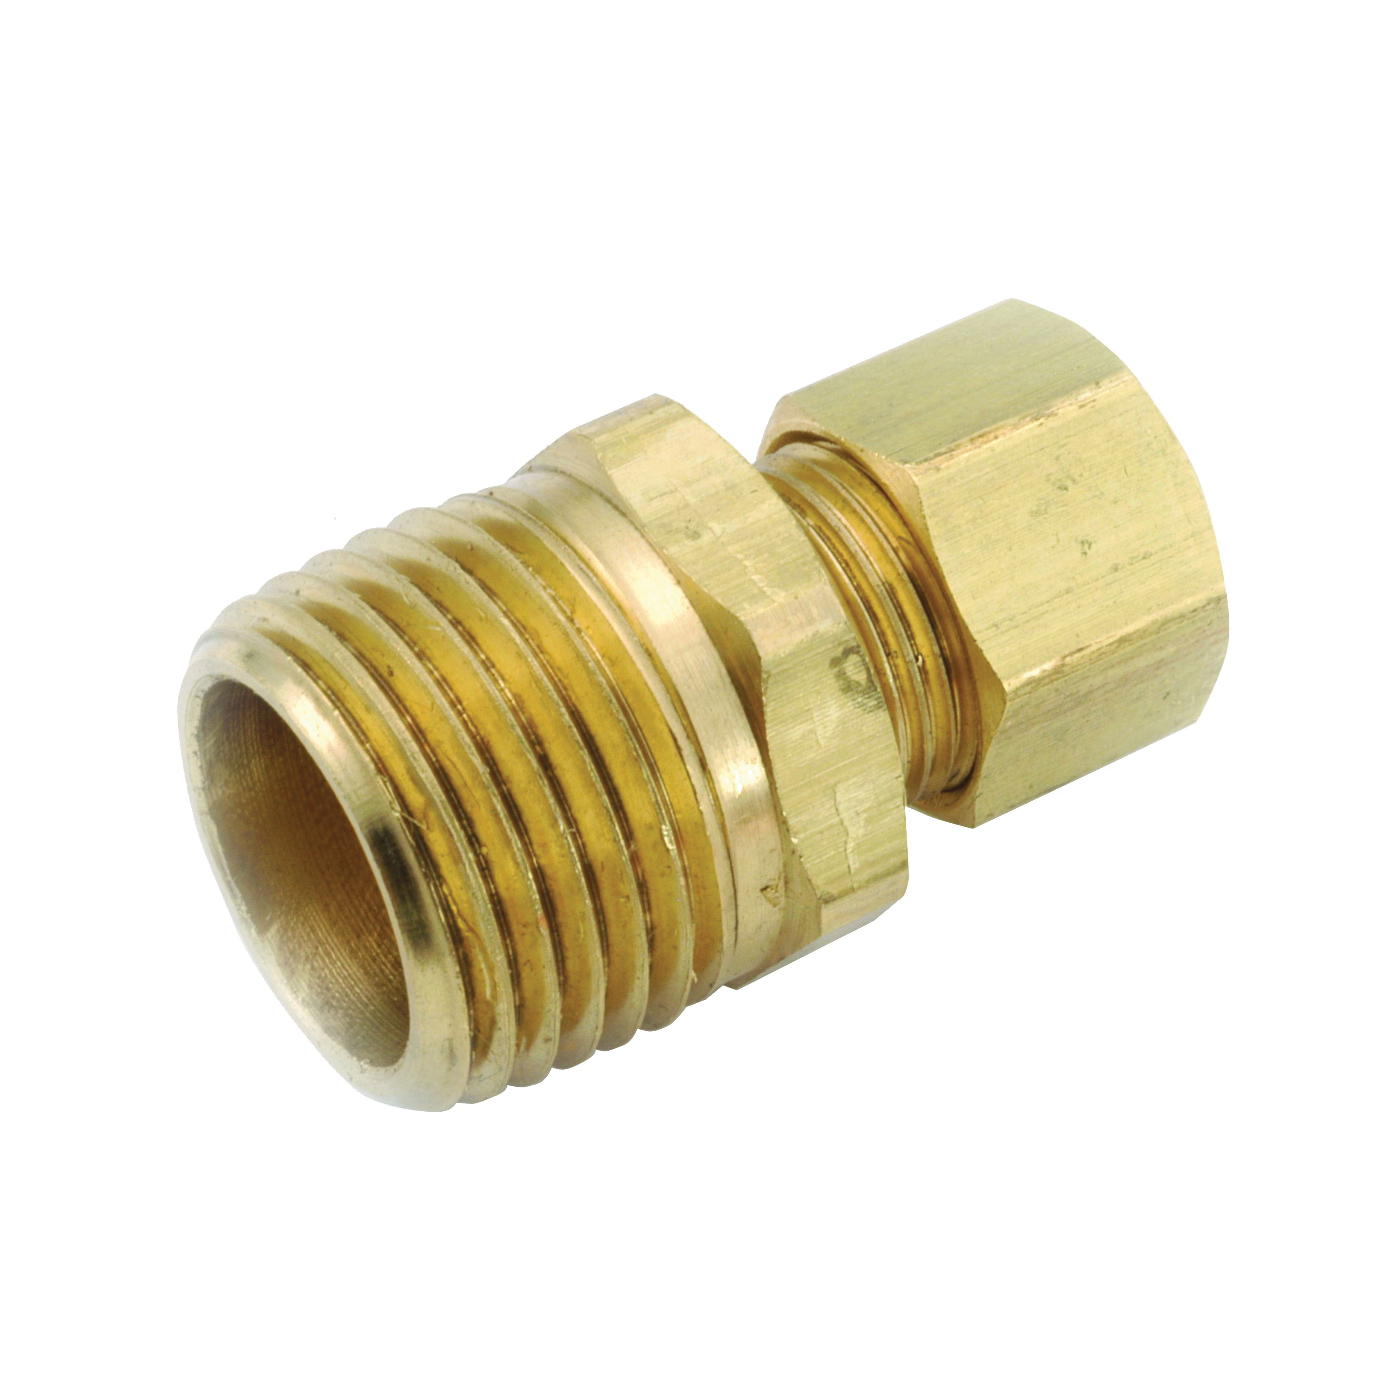 Picture of Anderson Metals 750068-0606 Connector, 3/8 in Compression, 3/8 in Male